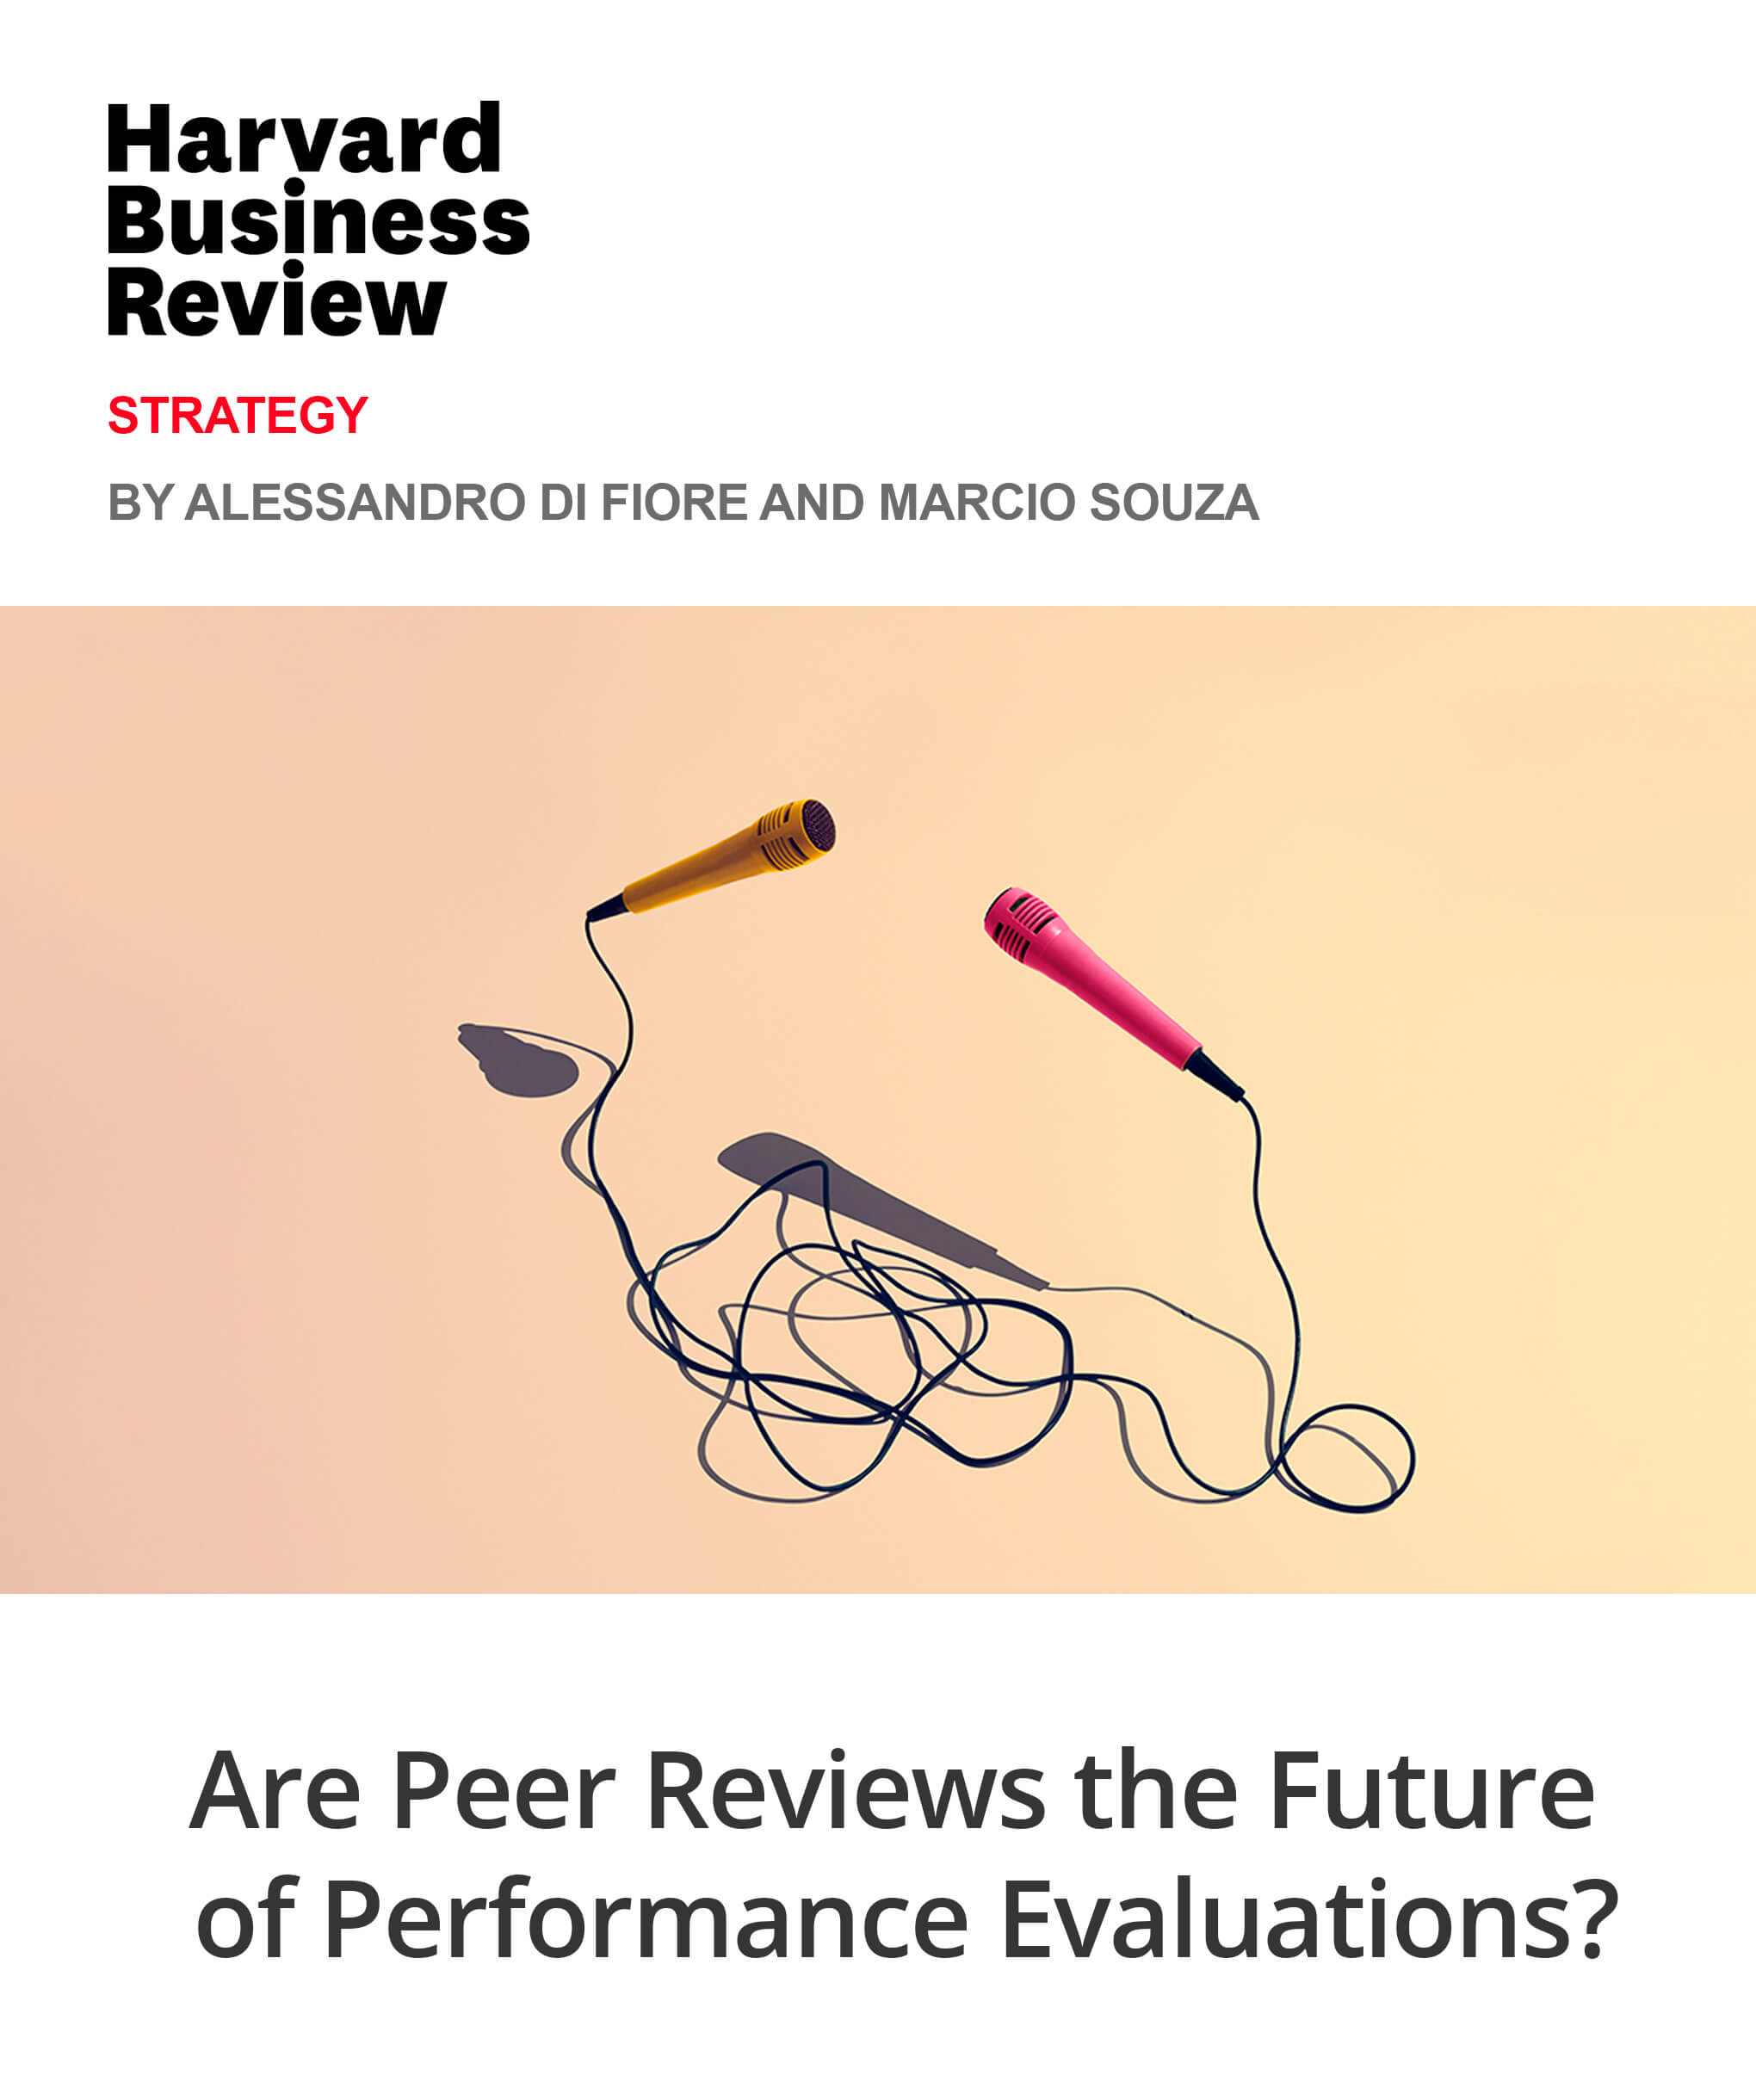 Are Peer Reviews the Future of Perfomance Evaluations